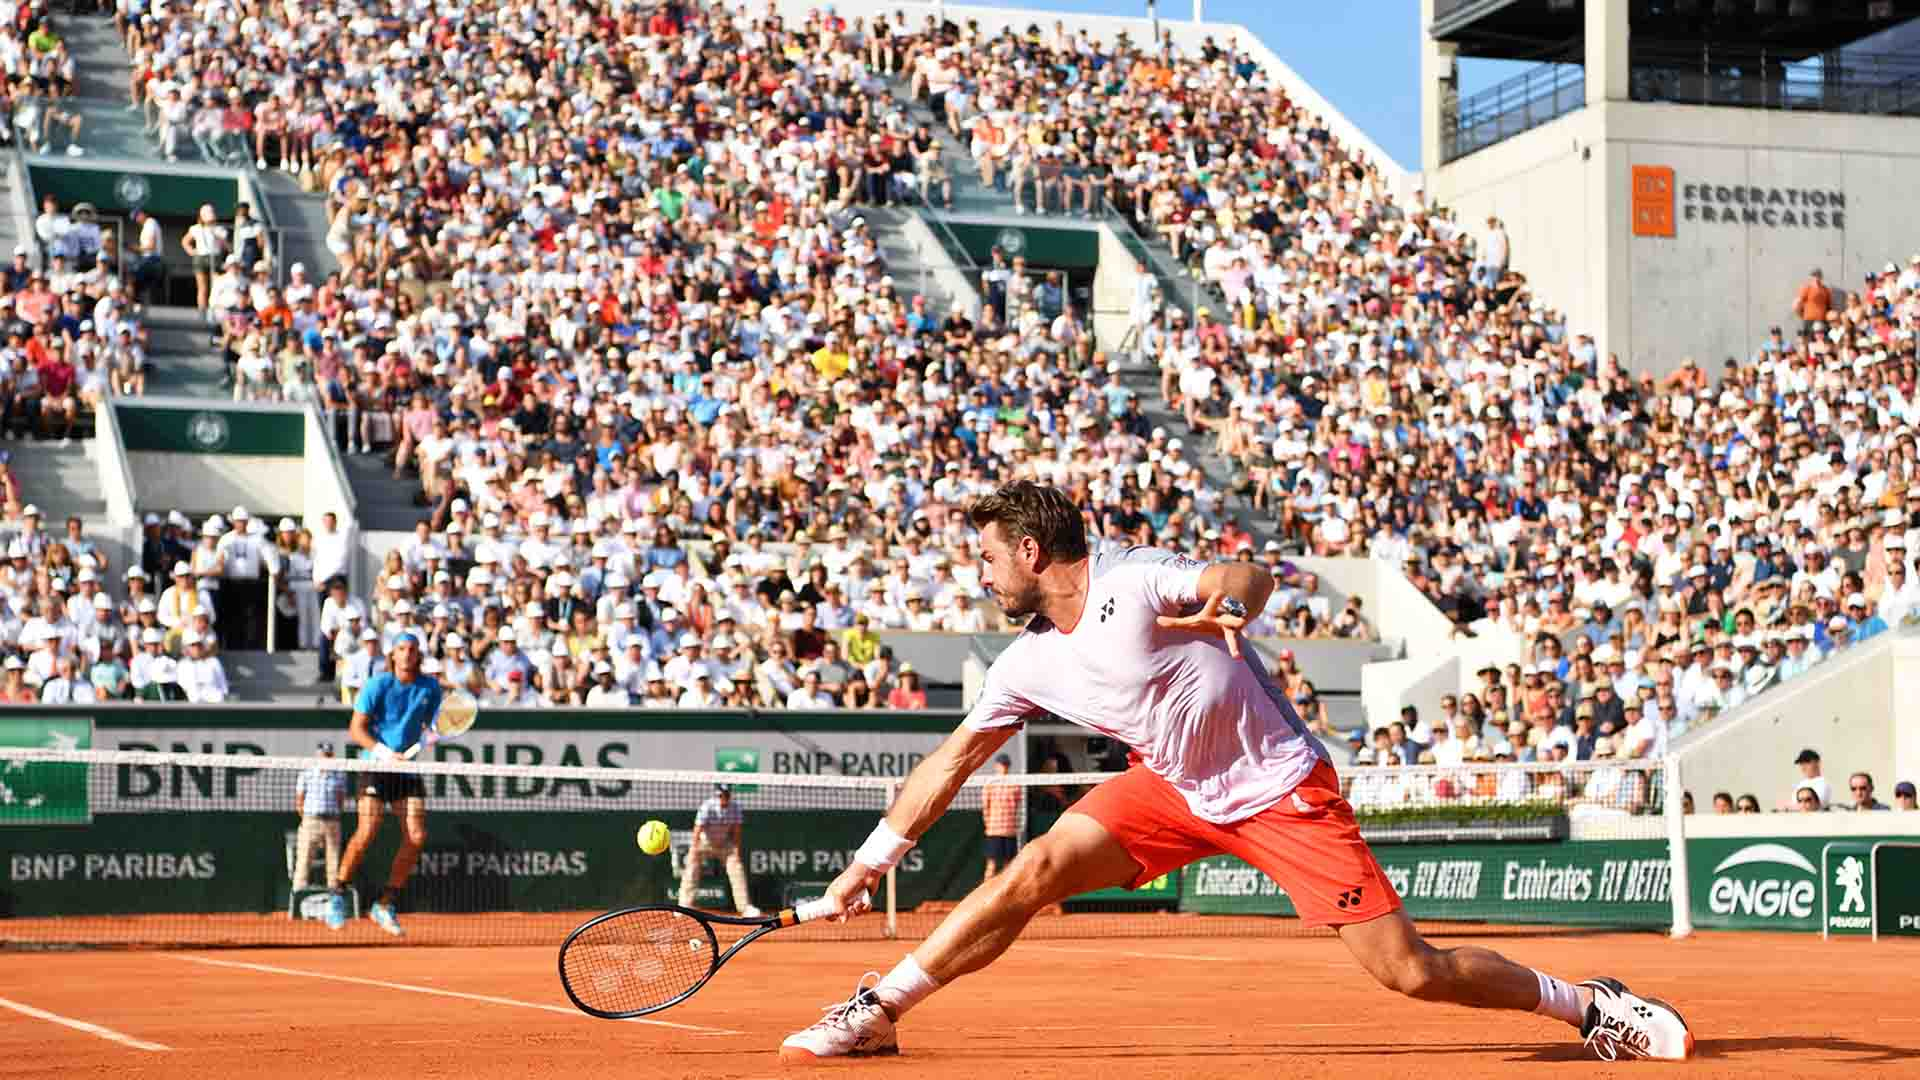 Stefanos Tsitsipas and Stan Wawrinka's fourth-round match at Roland Garros was voted the second best Grand Slam match of 2019 by ATPTour.com.